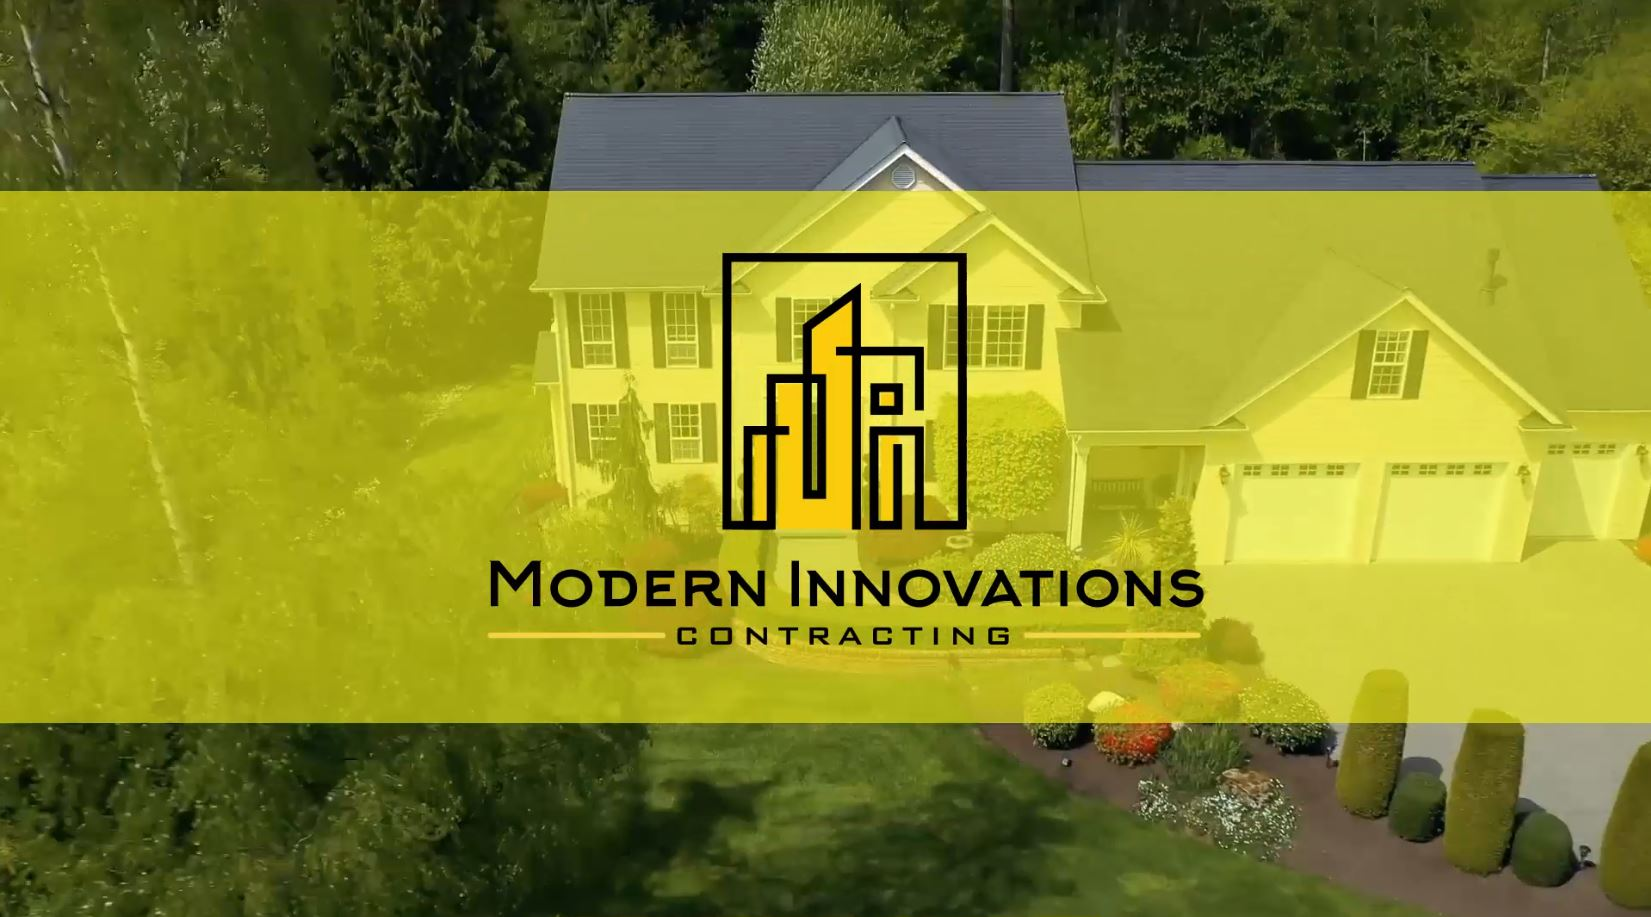 Modern Innovations Contracting